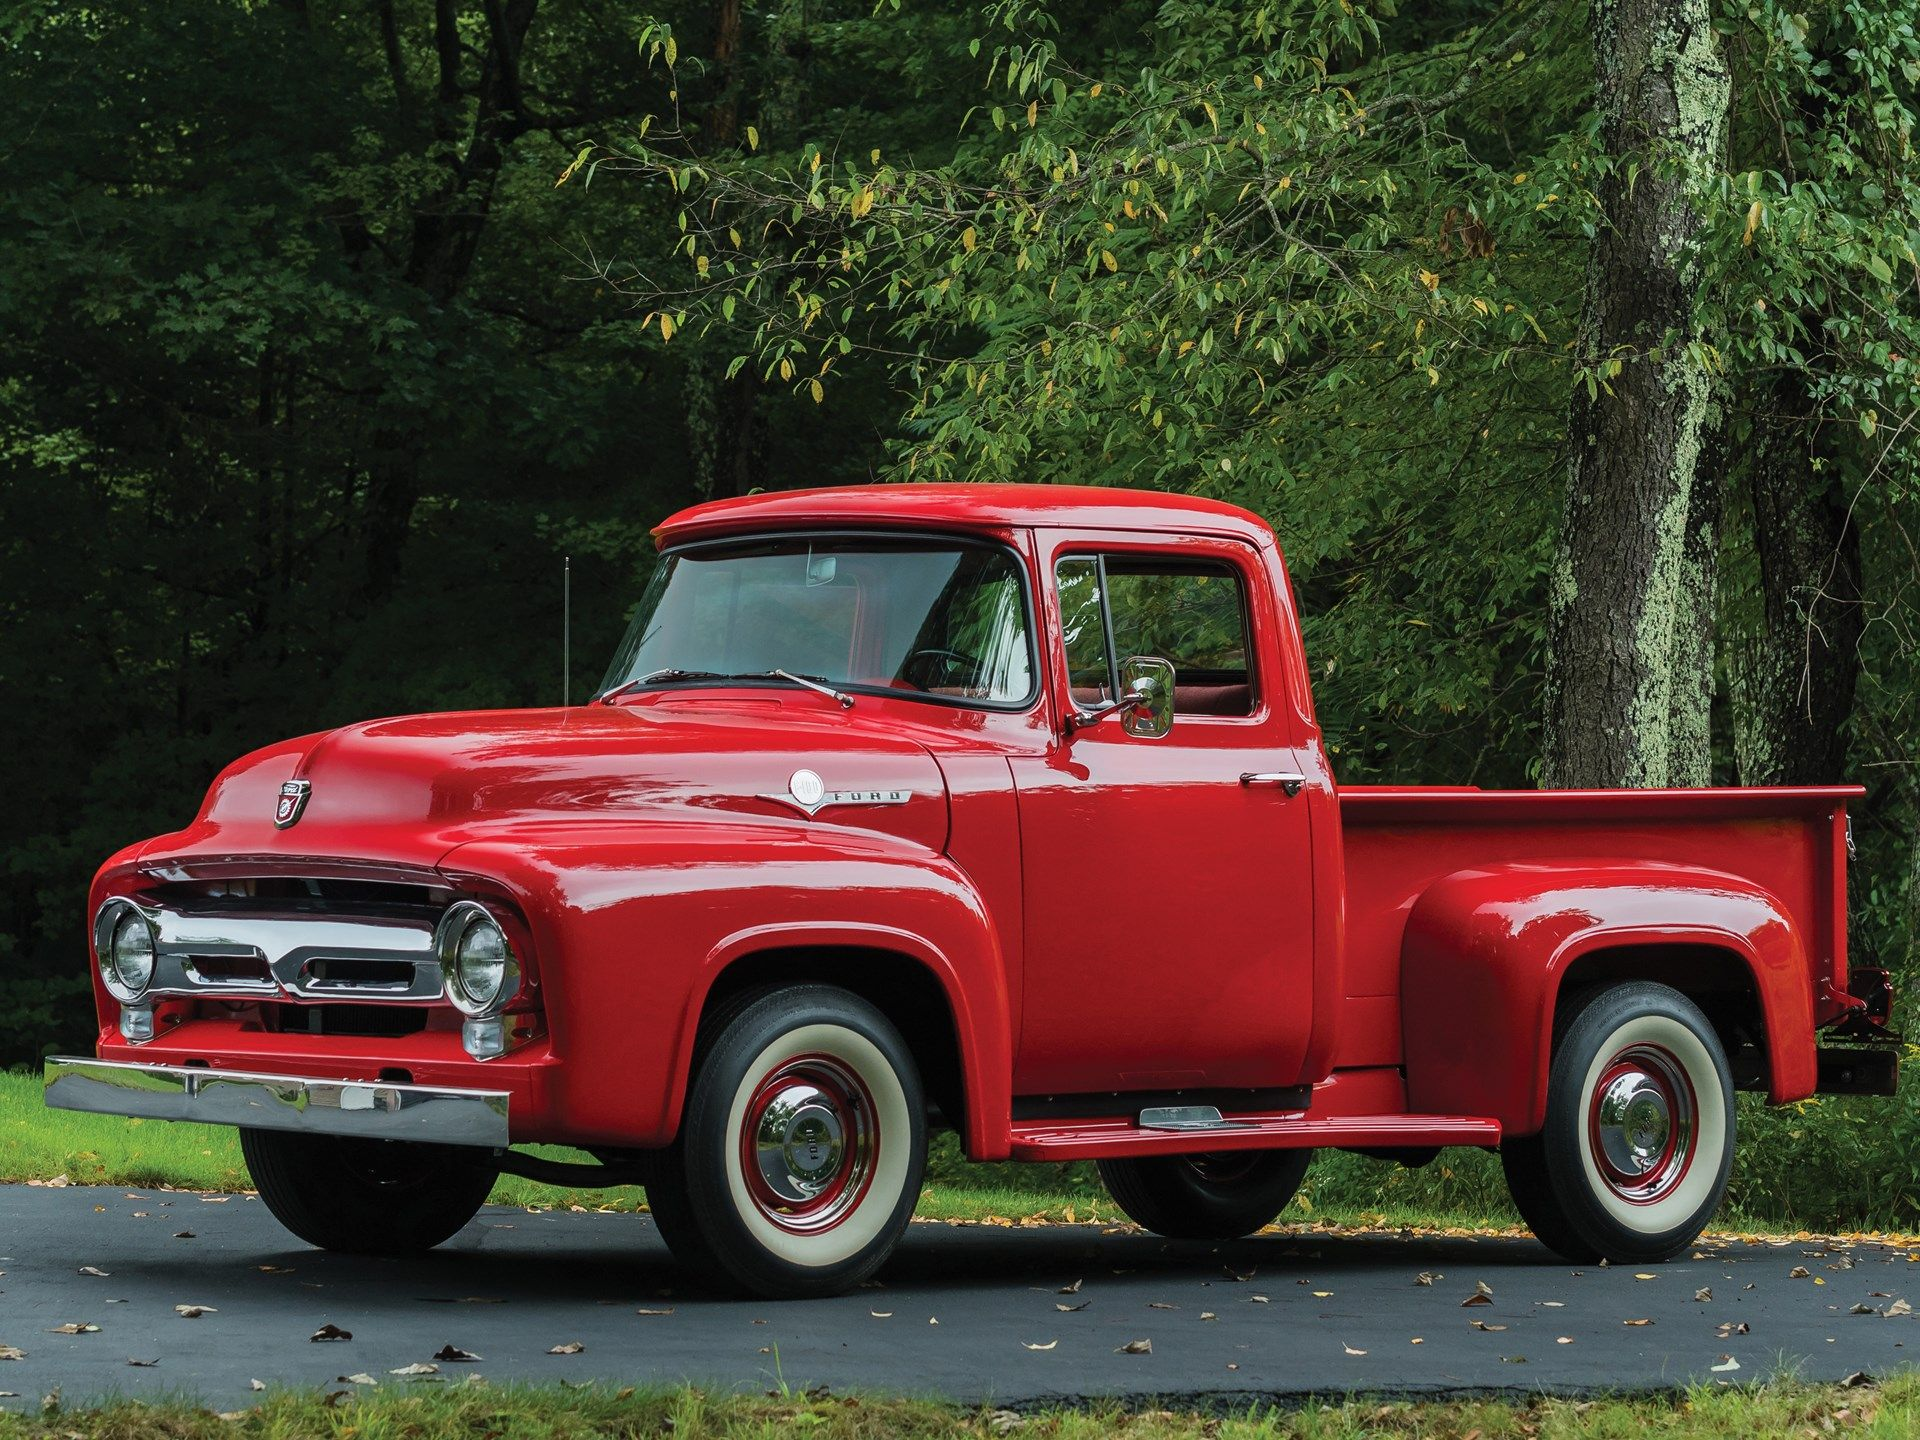 1956 Ford F 100 Pickup 1956 Ford F100 Classic Trucks For Sale 1956 Ford Truck